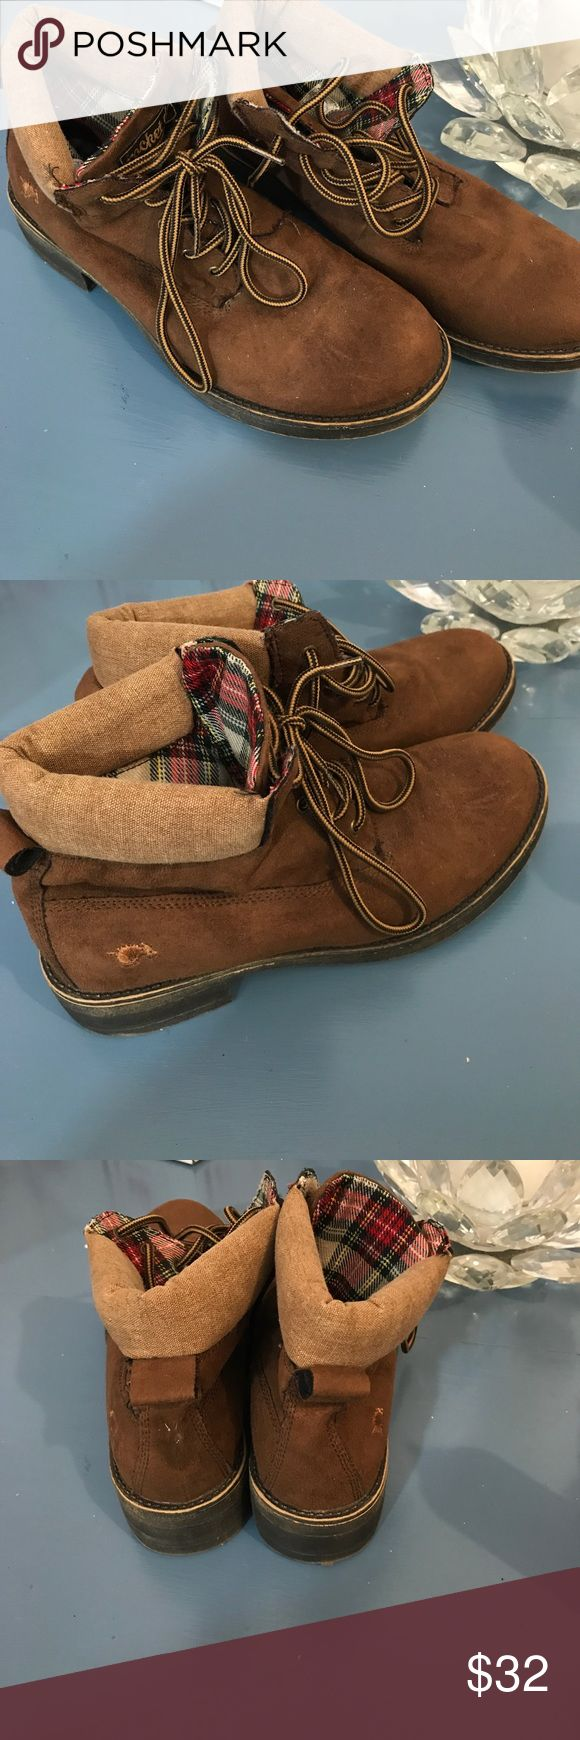 Rocket Dog 🐶 8.5 Boots See pics for quality. Rocket Dog Shoes Ankle Boots & Booties